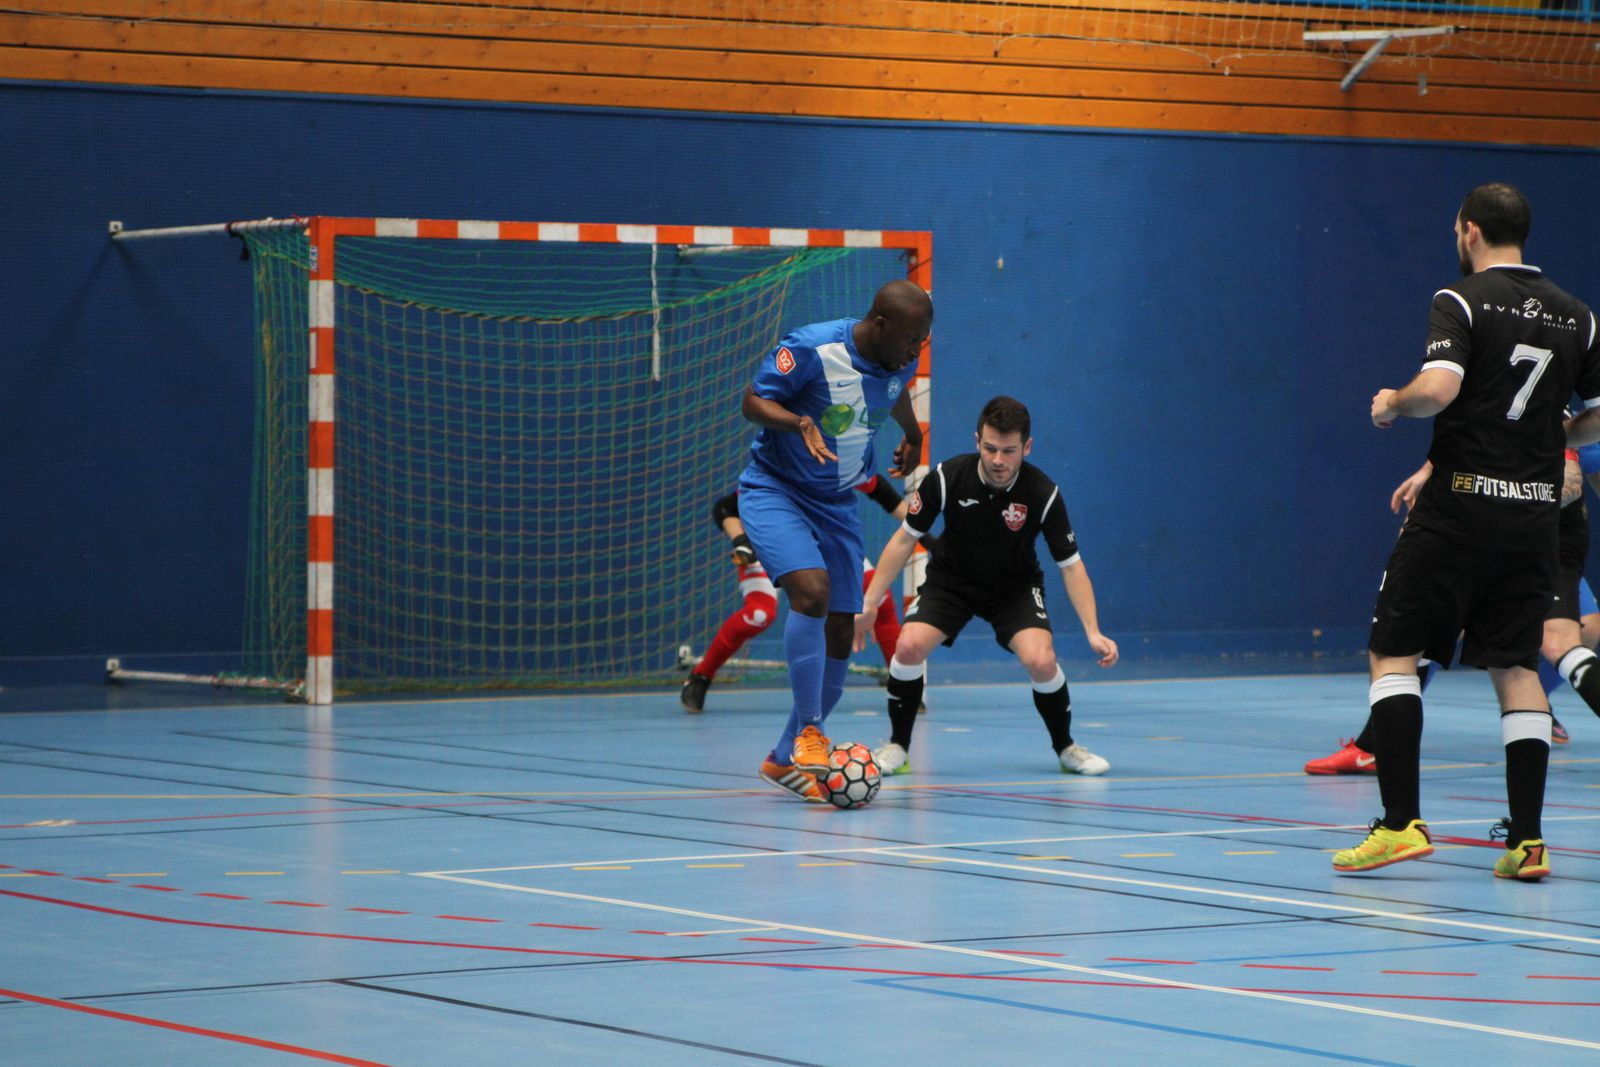 L'AS Minguettes Futsal surprise par Reims